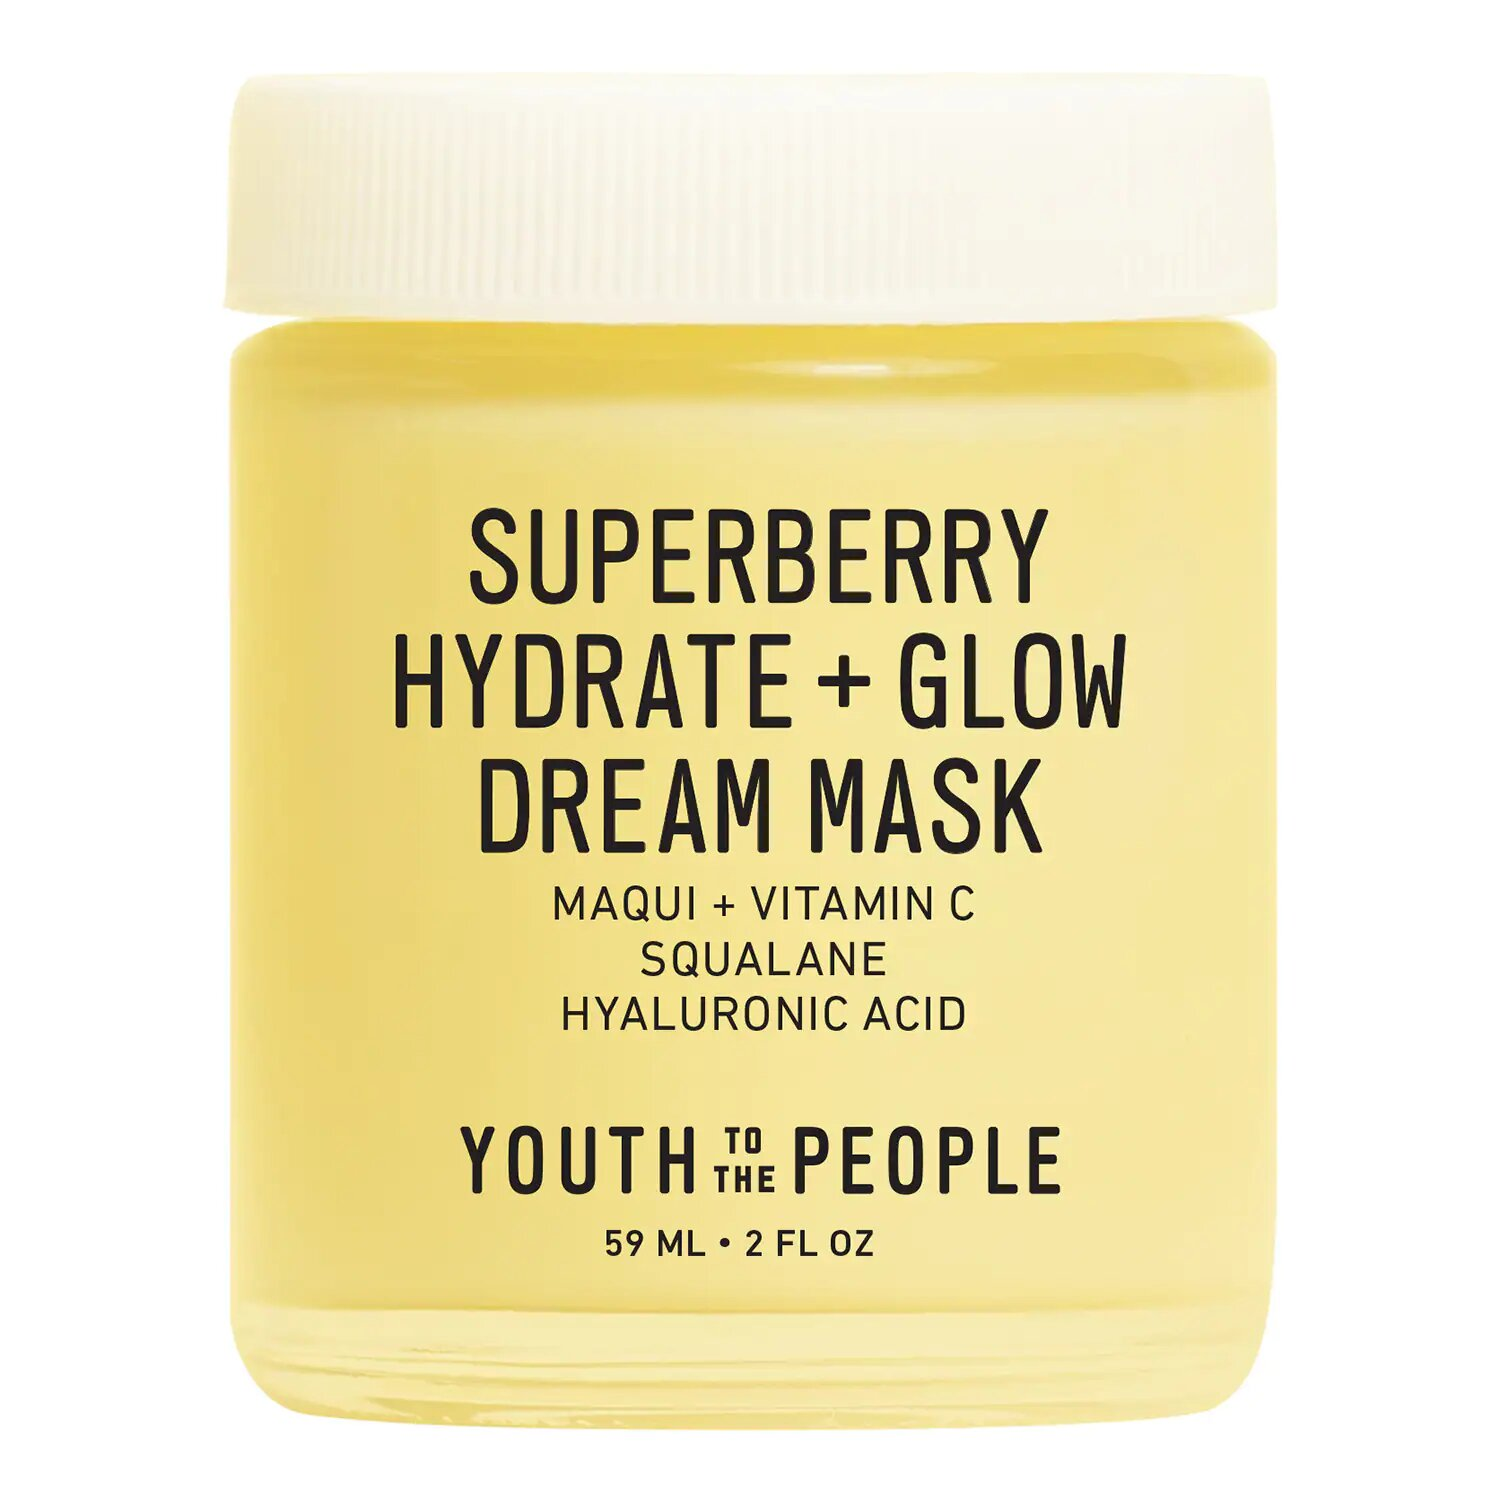 Superberry Hydrate + Glow Dream Mask Youth To The People